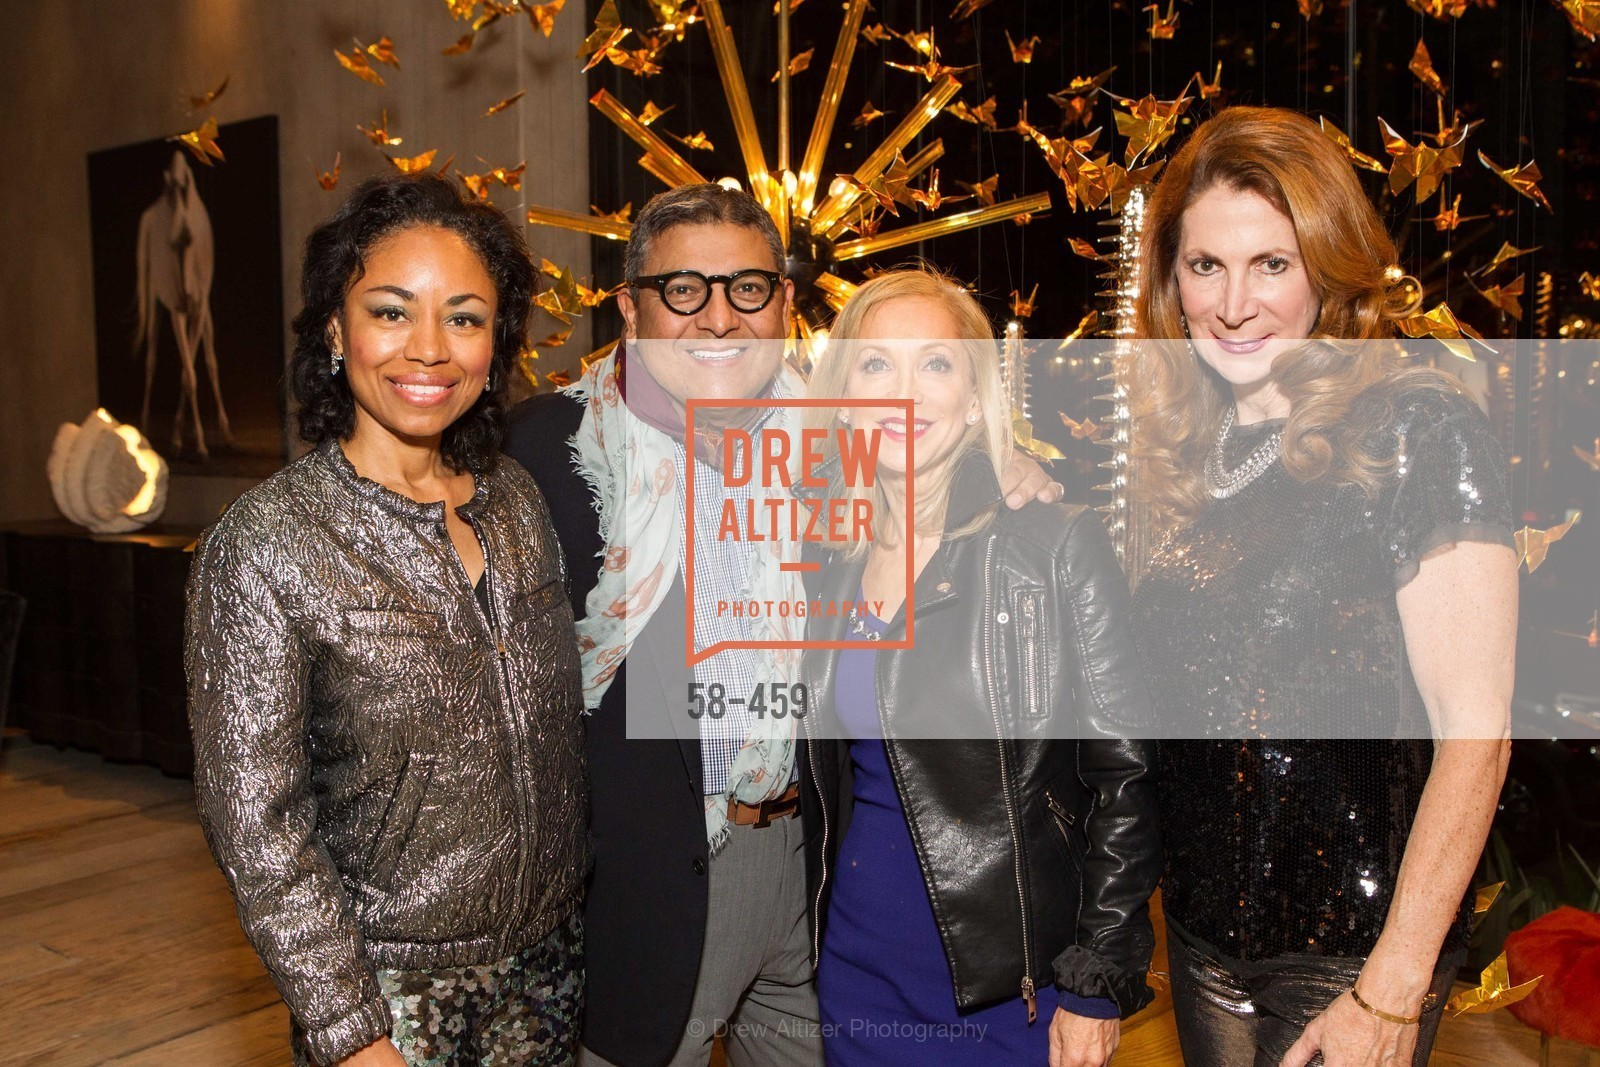 Tanya Powell, Riccardo Benavides, Shelley Gordon, Patricia Ferrin Loucks, 2014 SAN FRANCISCO BALLET OPENING NIGHT GALA Patron and Sponsor Reception, US. US, January 14th, 2014,Drew Altizer, Drew Altizer Photography, full-service agency, private events, San Francisco photographer, photographer california